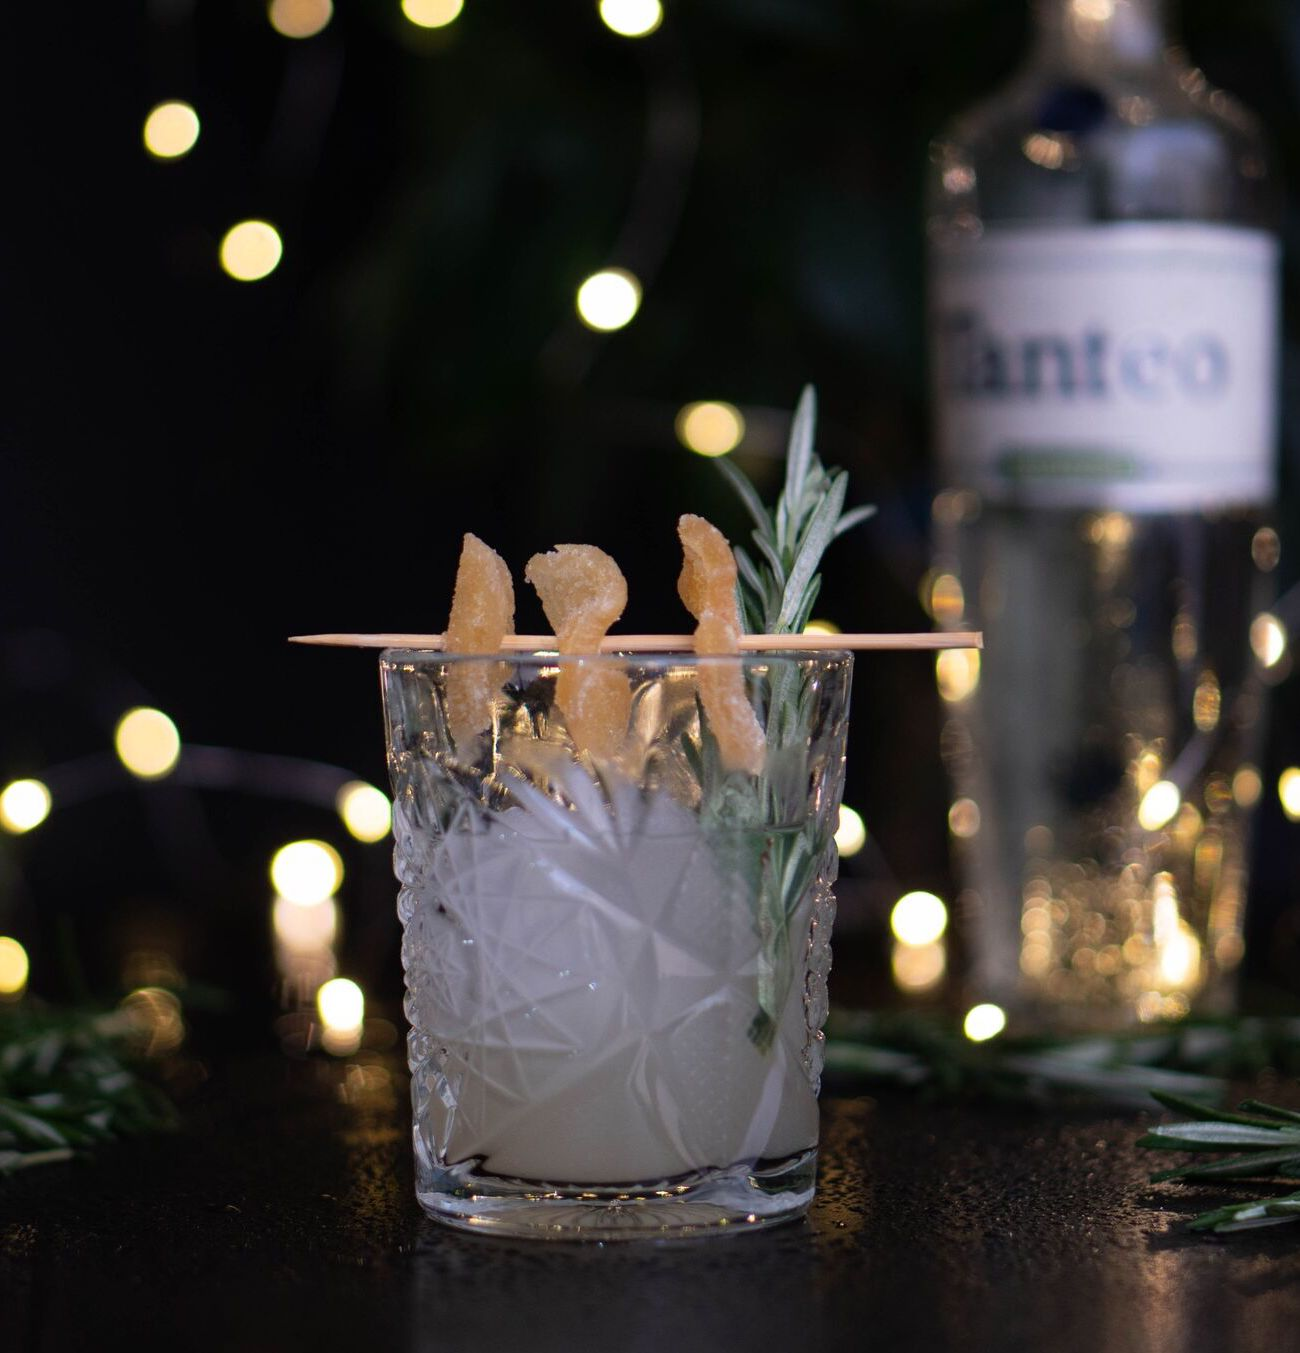 Tanteo Spicy Ginger Margarita